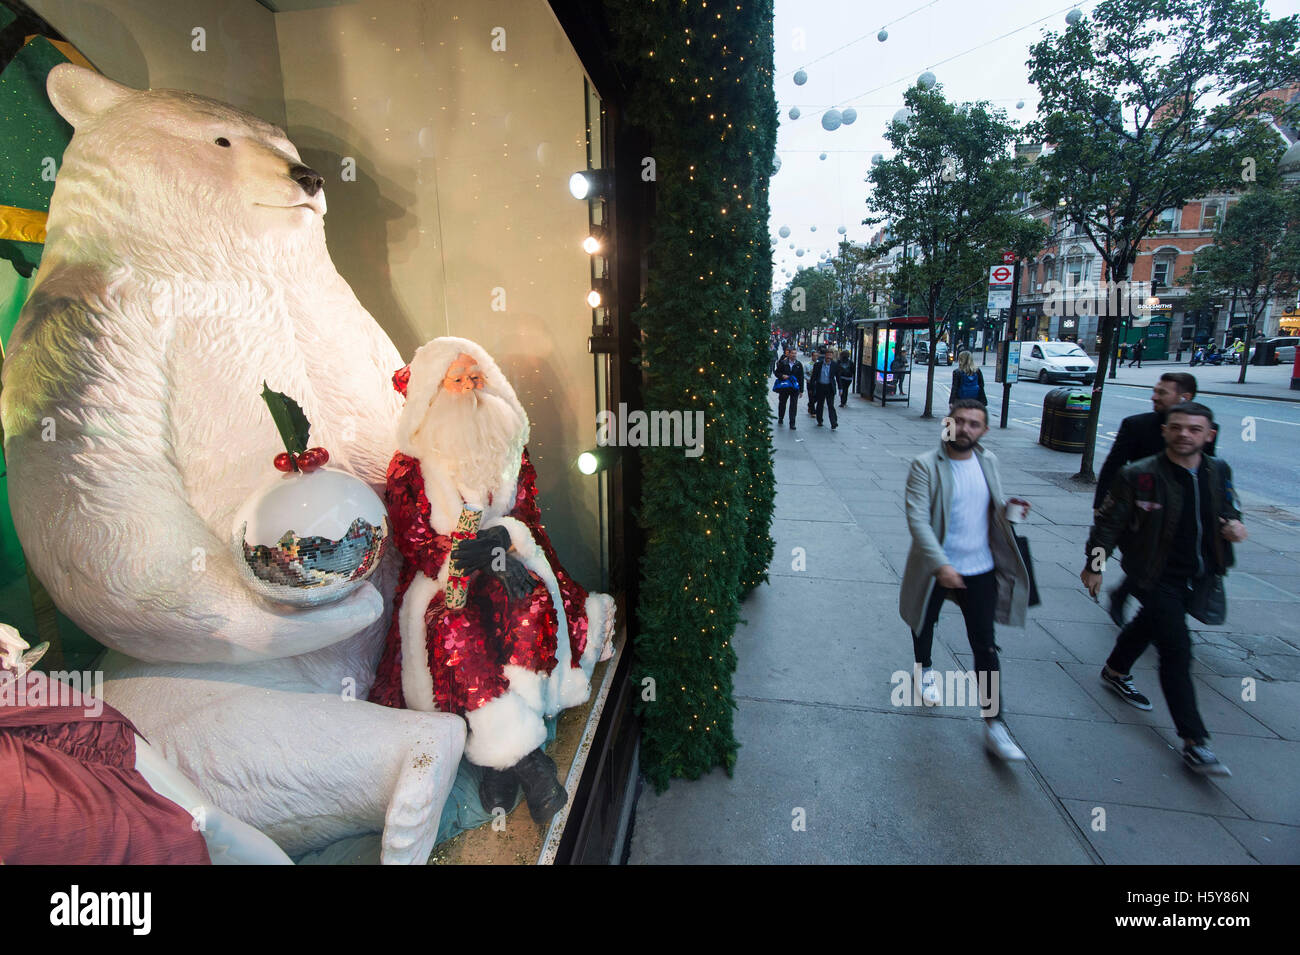 73f94edf2bca1 Shopping Window Selfridges Stock Photos   Shopping Window Selfridges ...